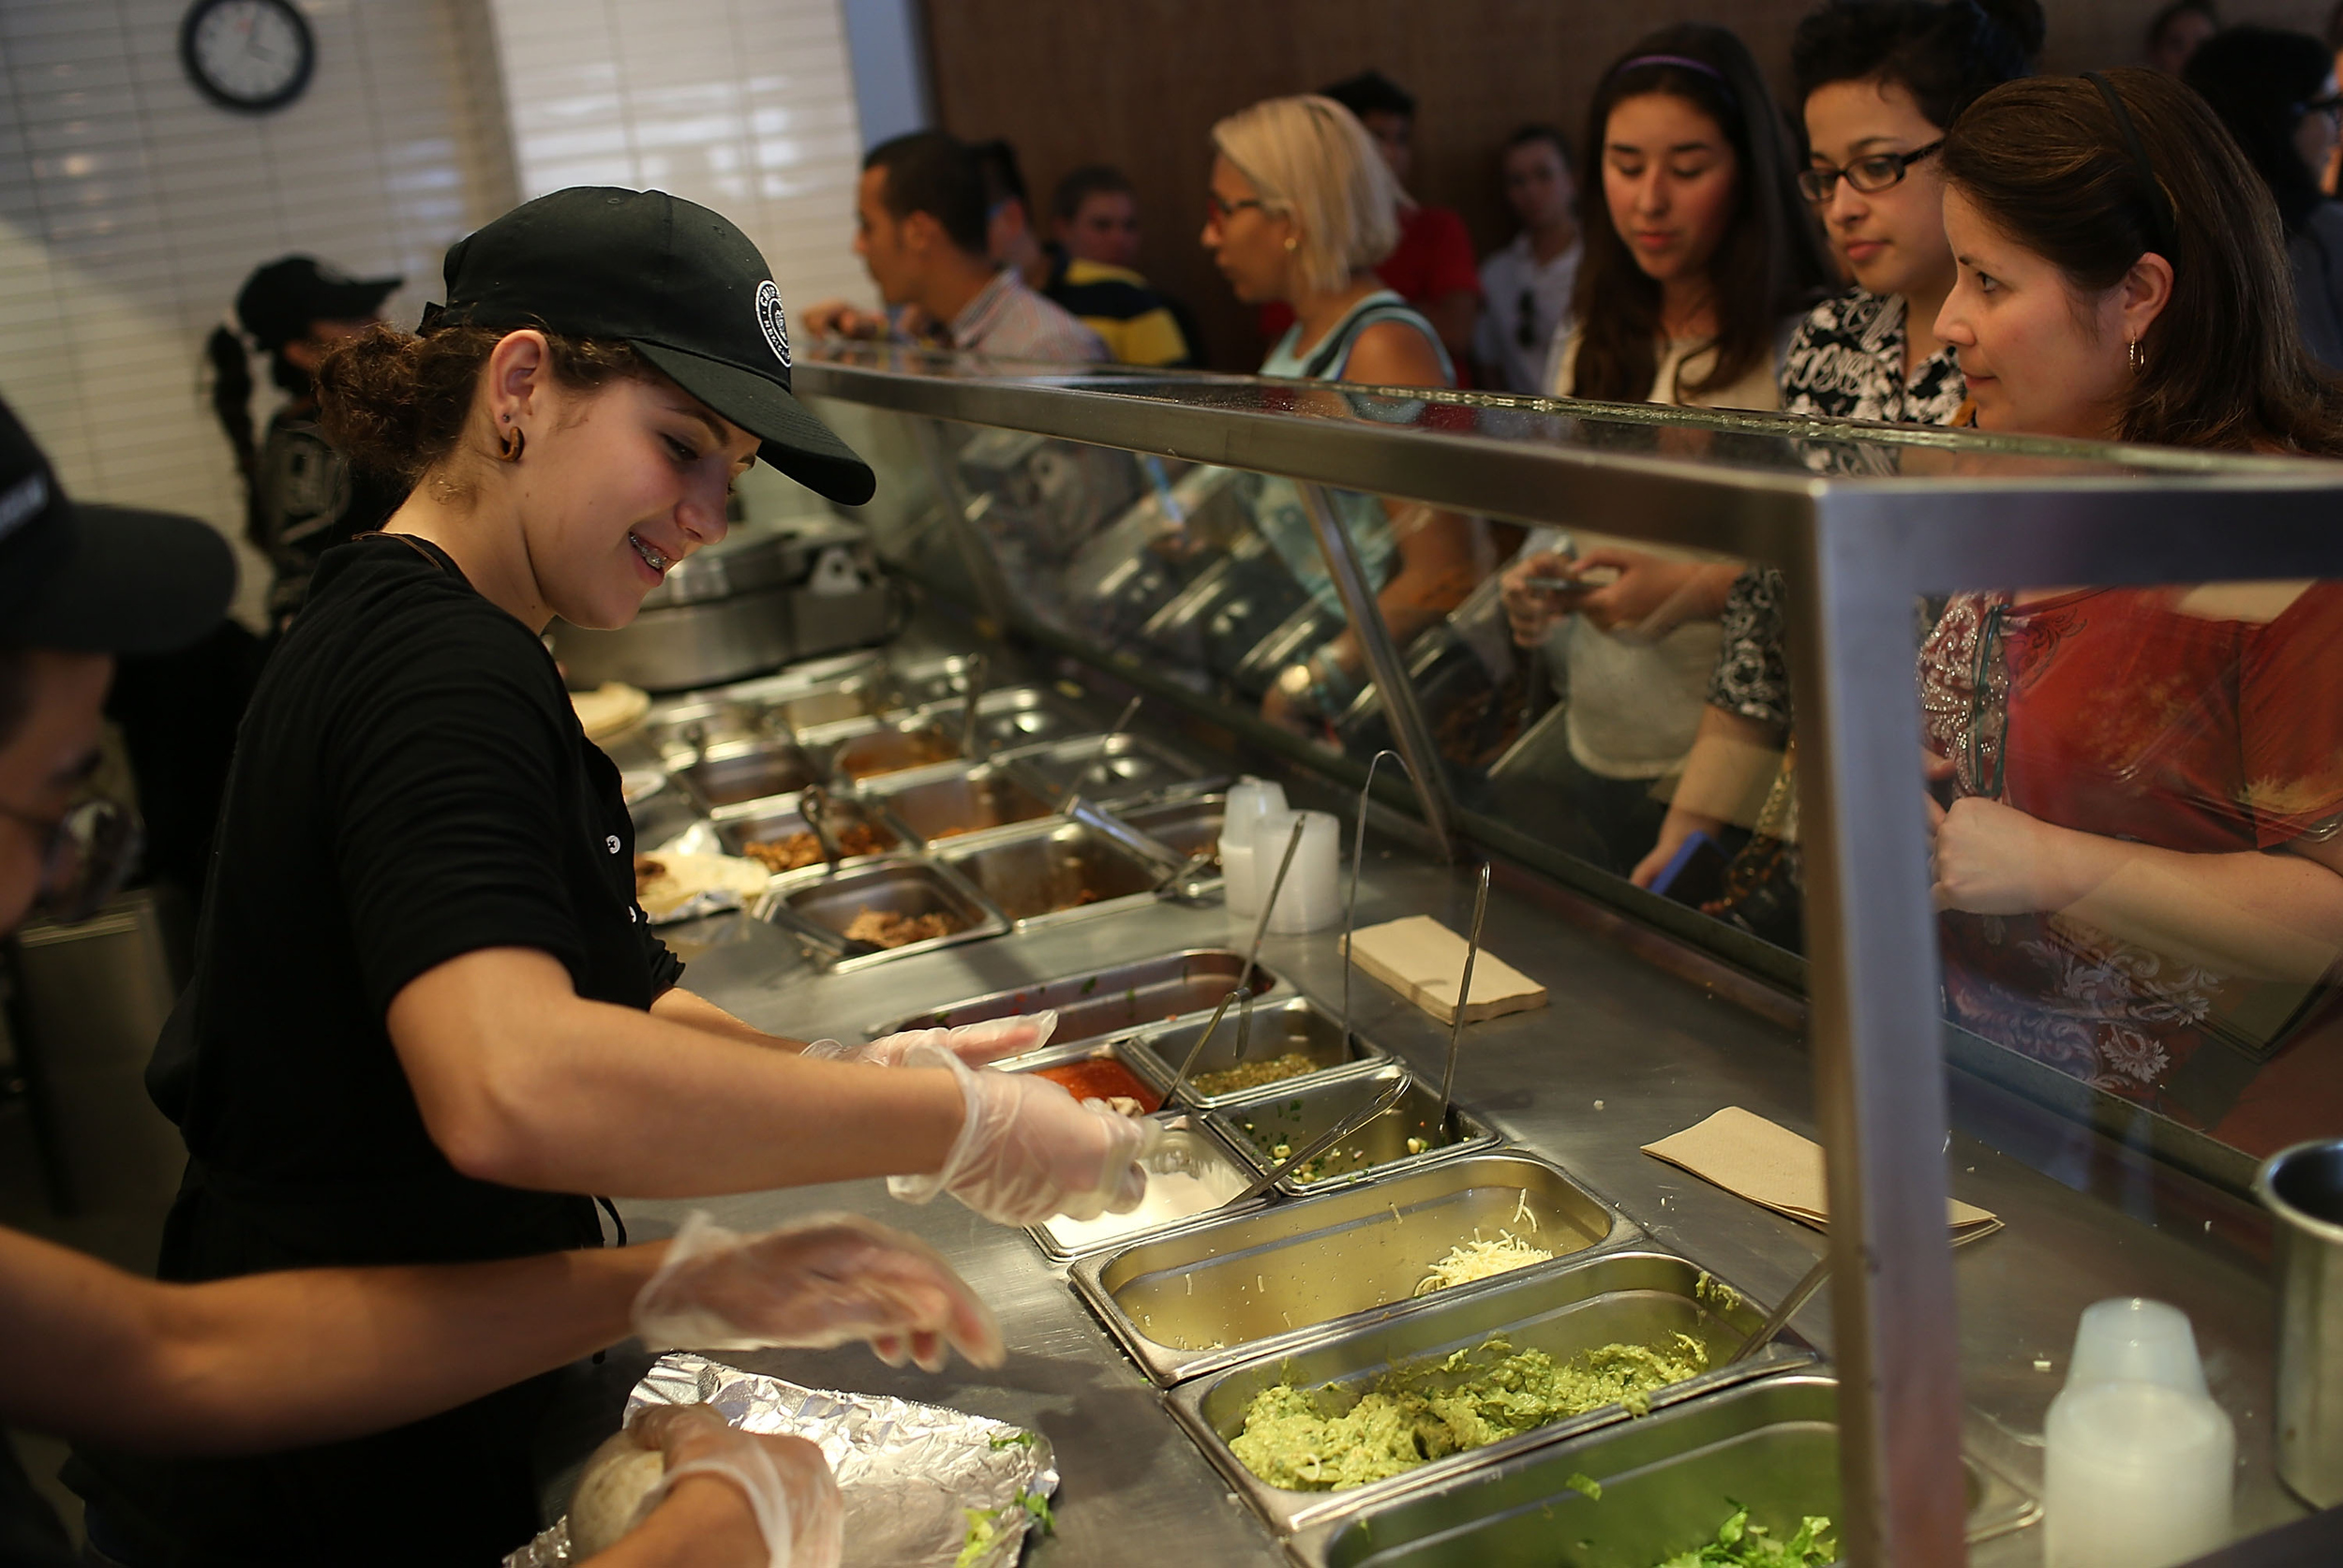 After a number of outbreaks of food-borne illness at Chipotle restaurants around the U.S., the company is launching a massive marketing campaign to restore its image.